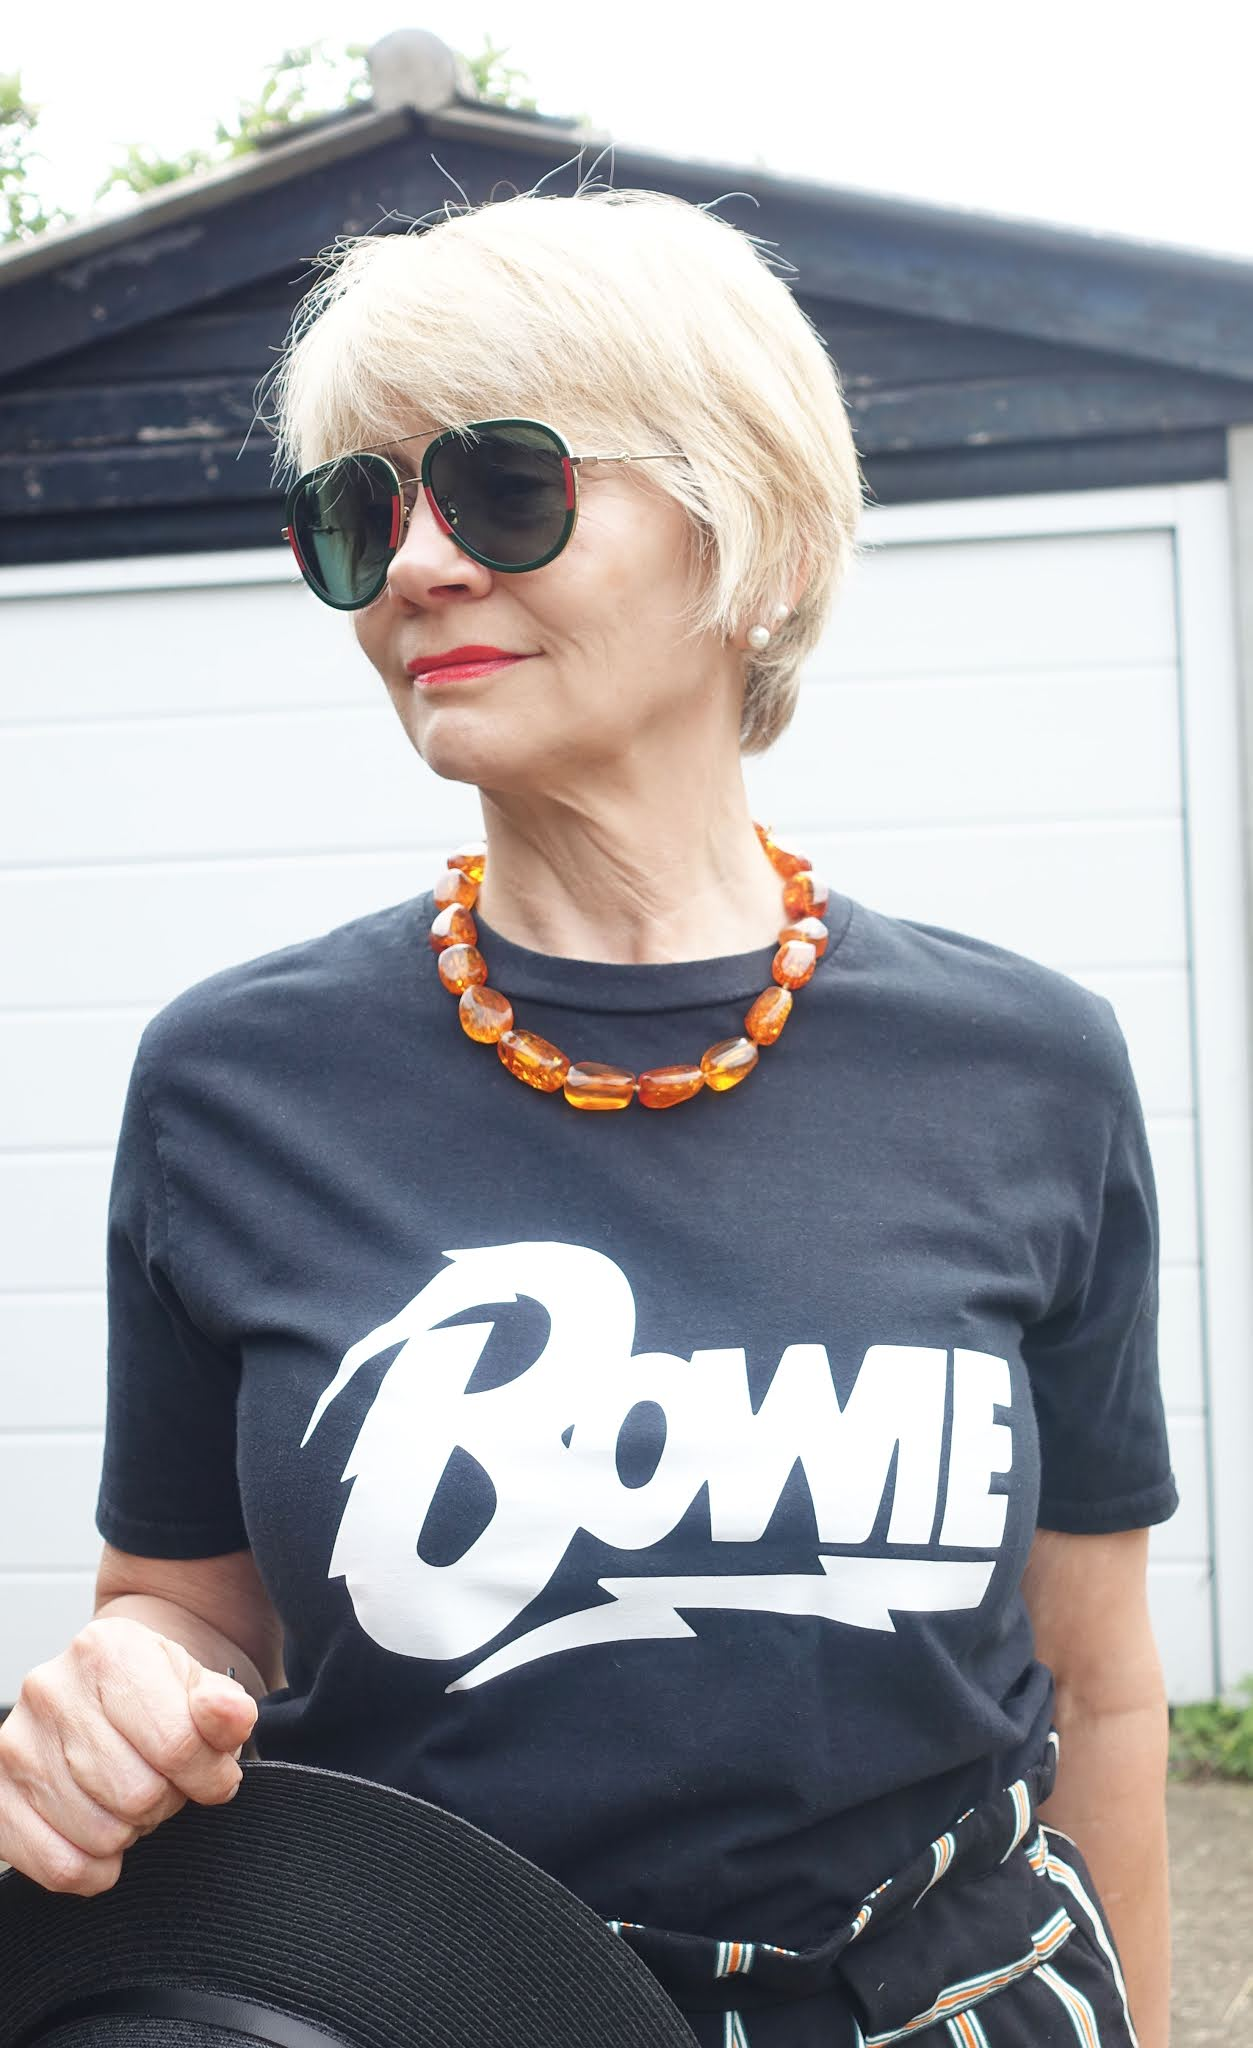 If the weather's good and your picnic is in the UK, how about a slogan tee with paperbag trousers and comfortable Vionic wedges? Not to mention your Gucci prescription sunglasses, as worn by Gail Hanlon from over-50s style blog Is This Mutton